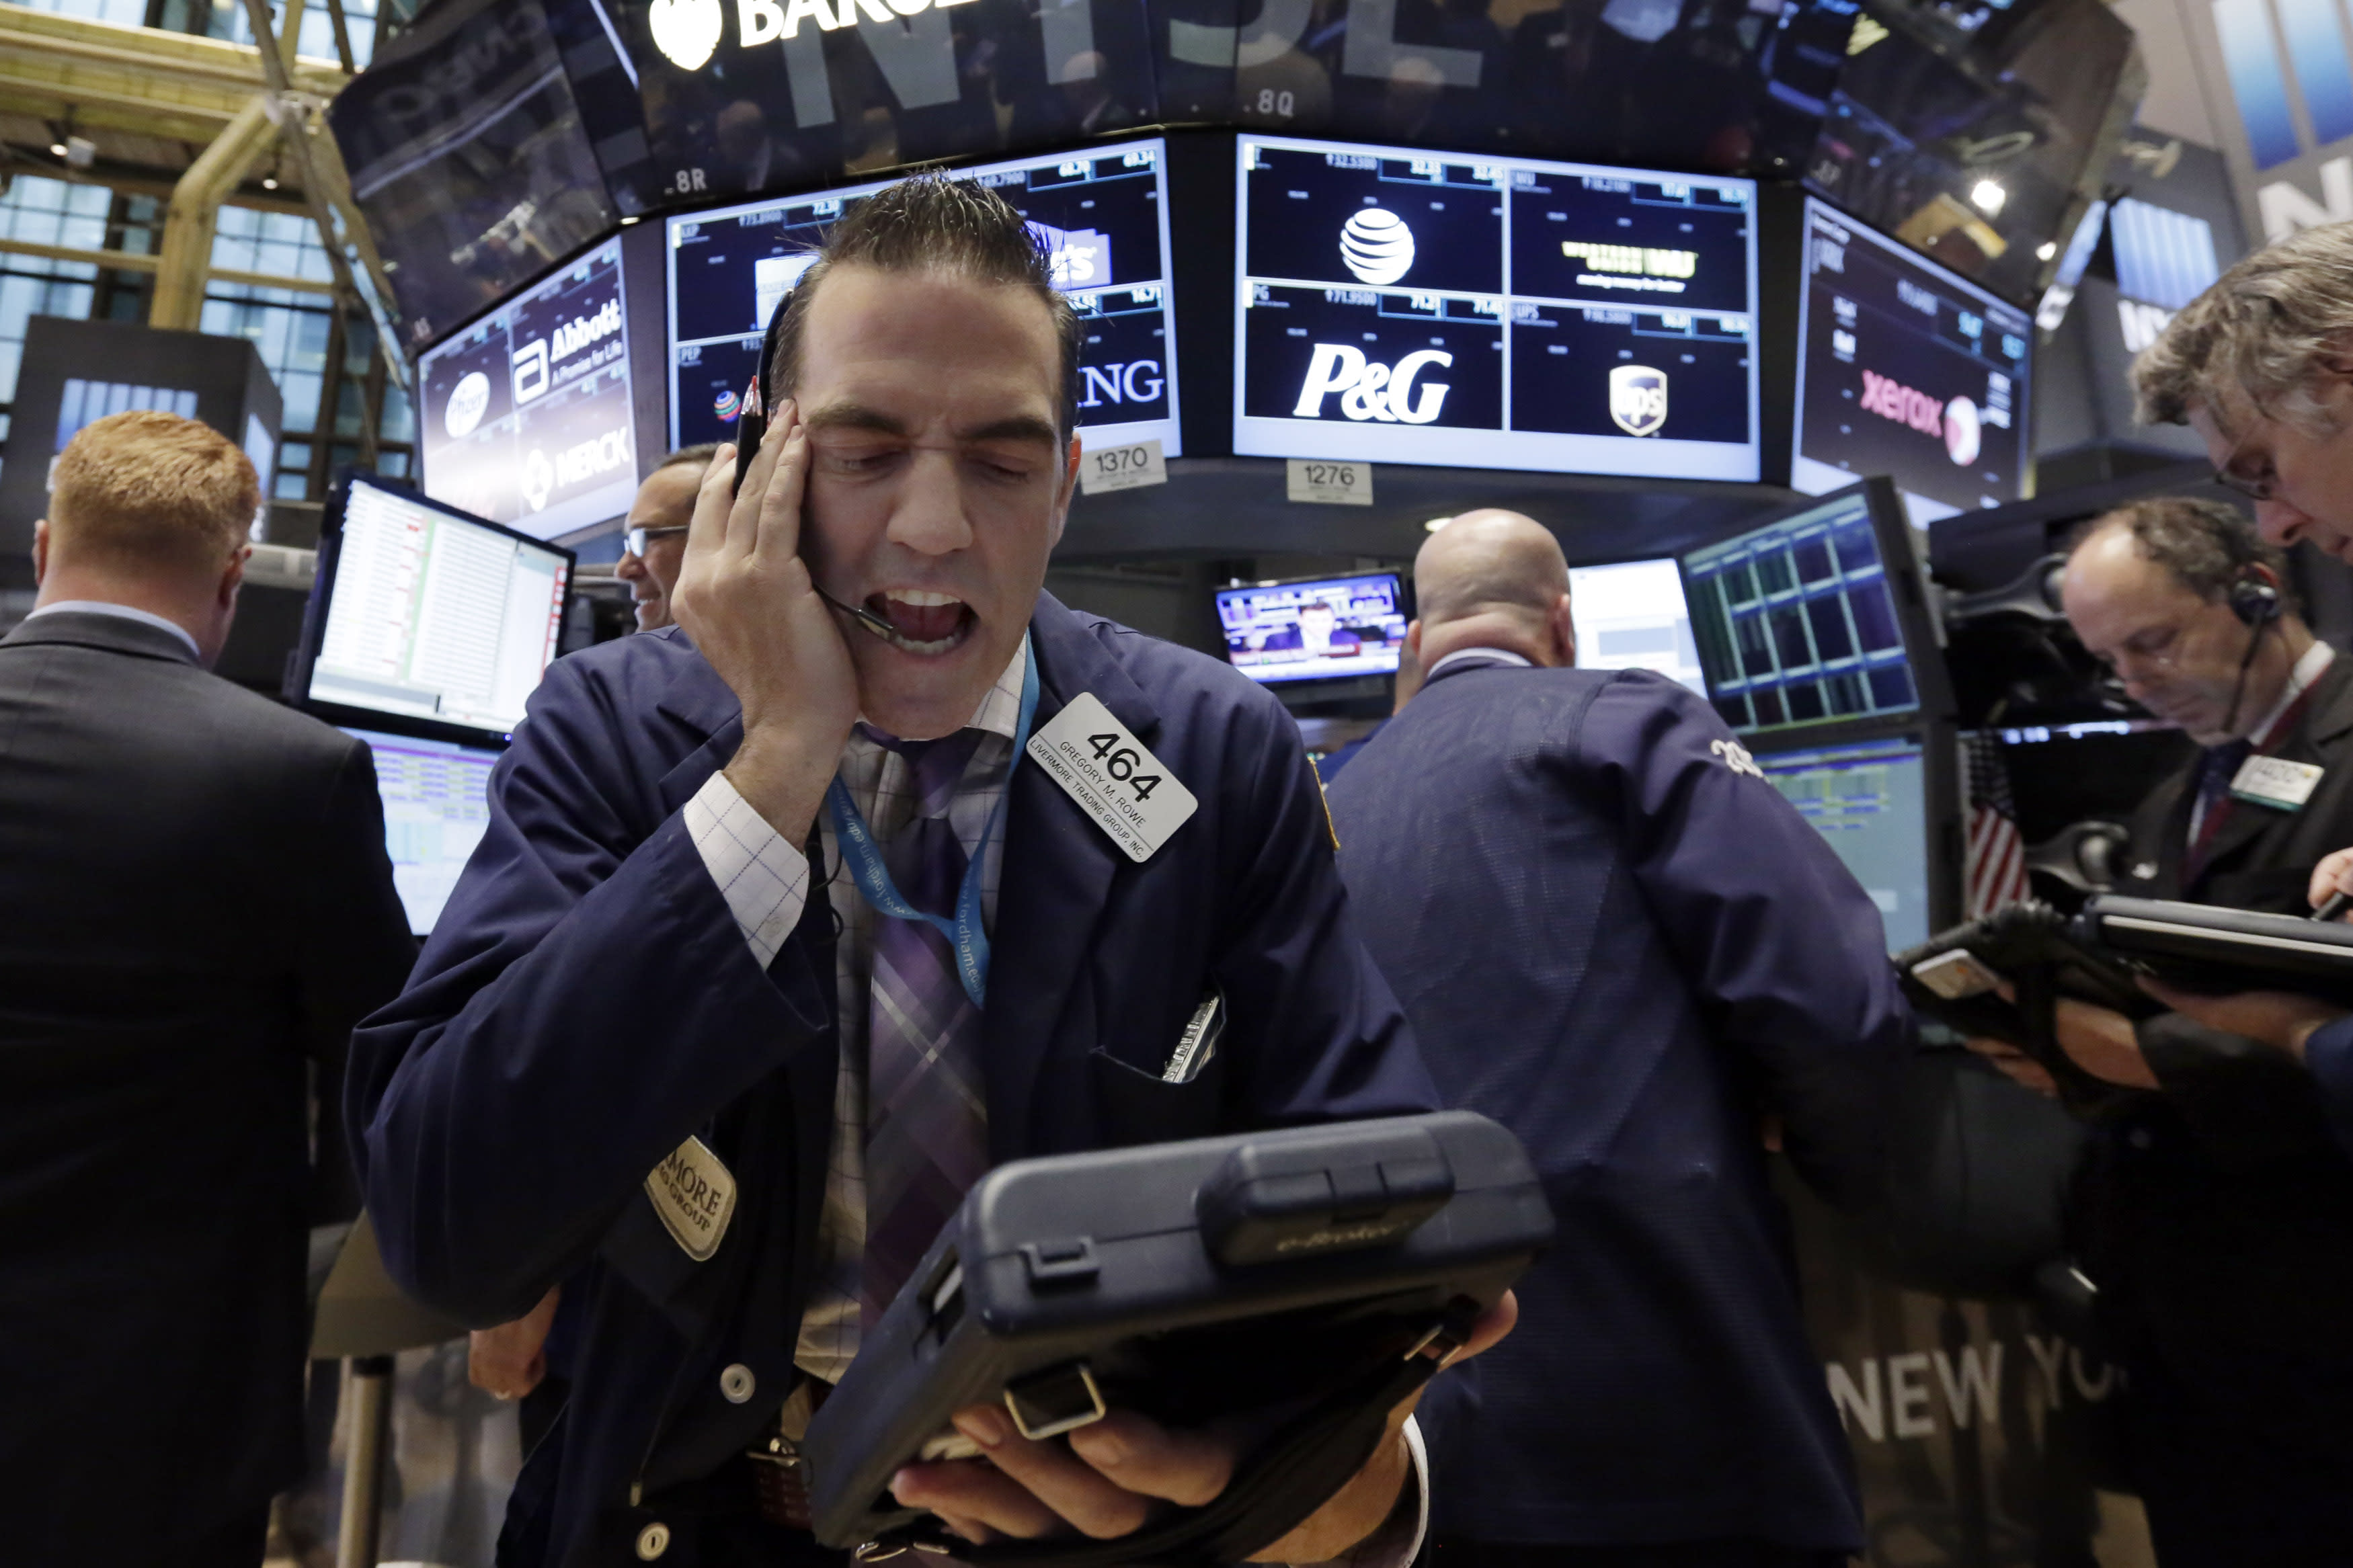 Stock market shakes off an early stumble, ends higher